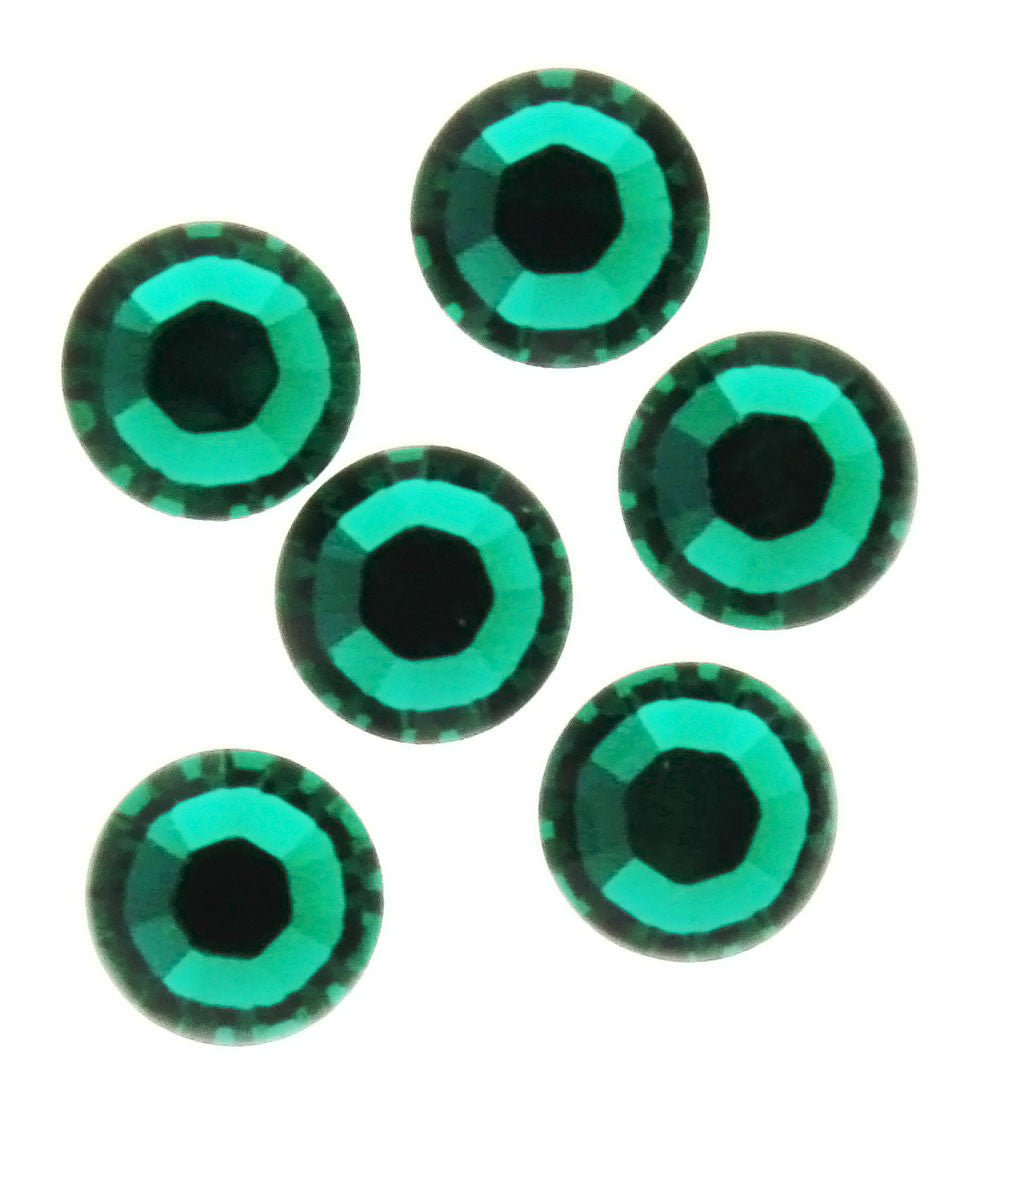 RHINESTONE EMERALD ROUND FACETED GEMS (1 DOZ)